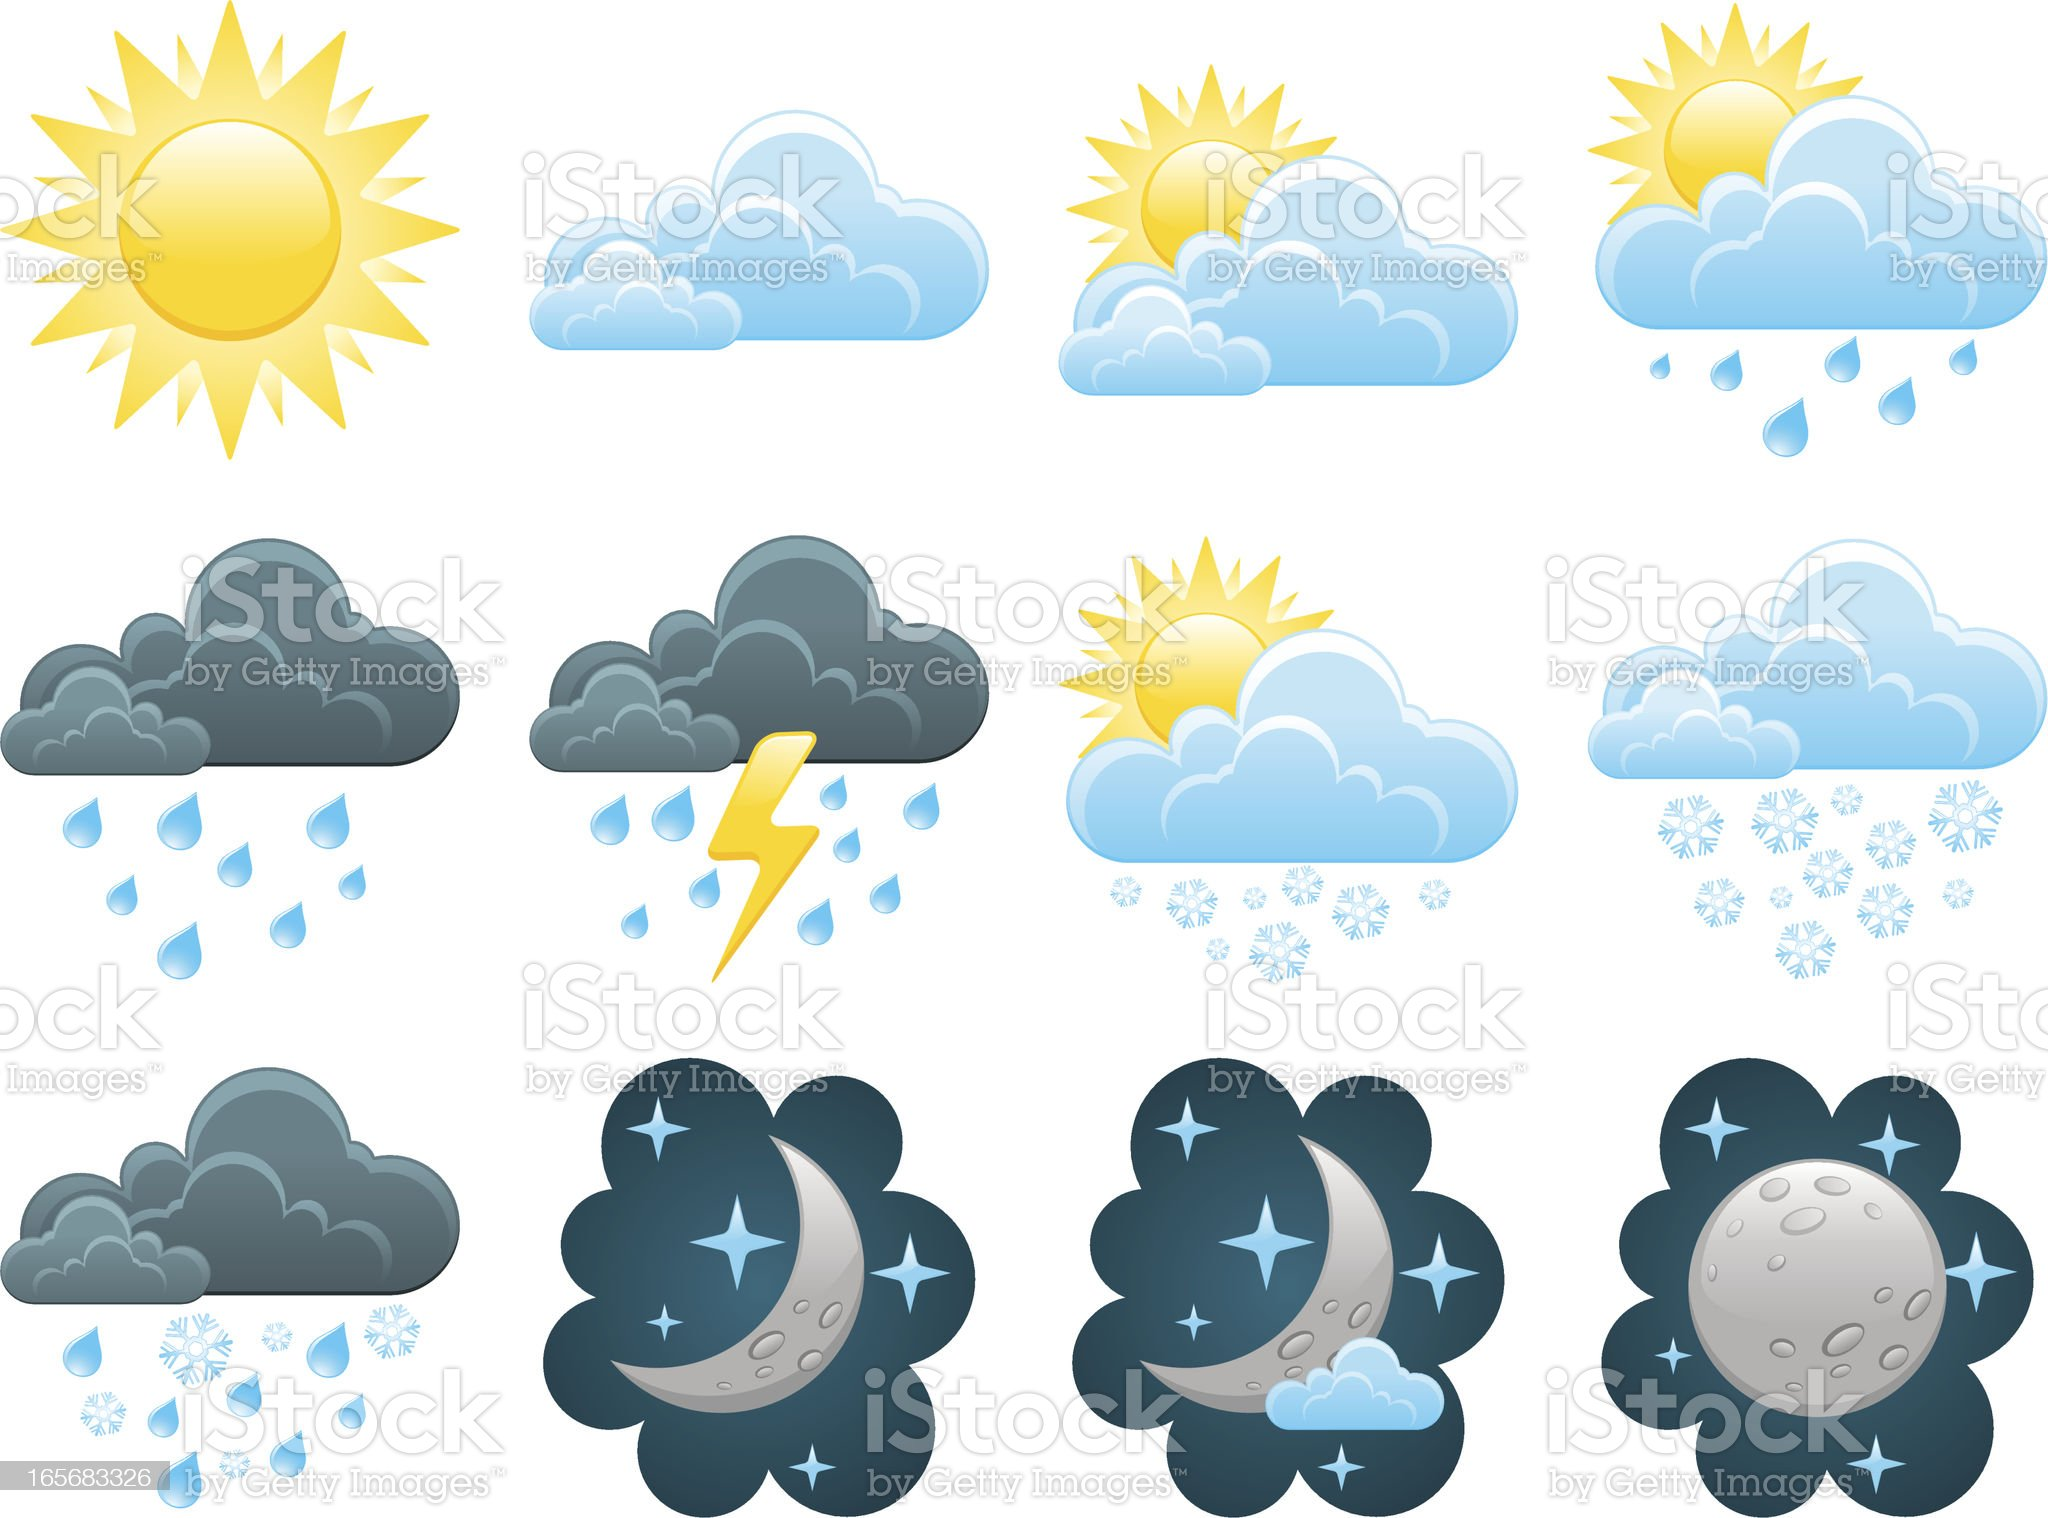 Weather icon set royalty-free stock vector art